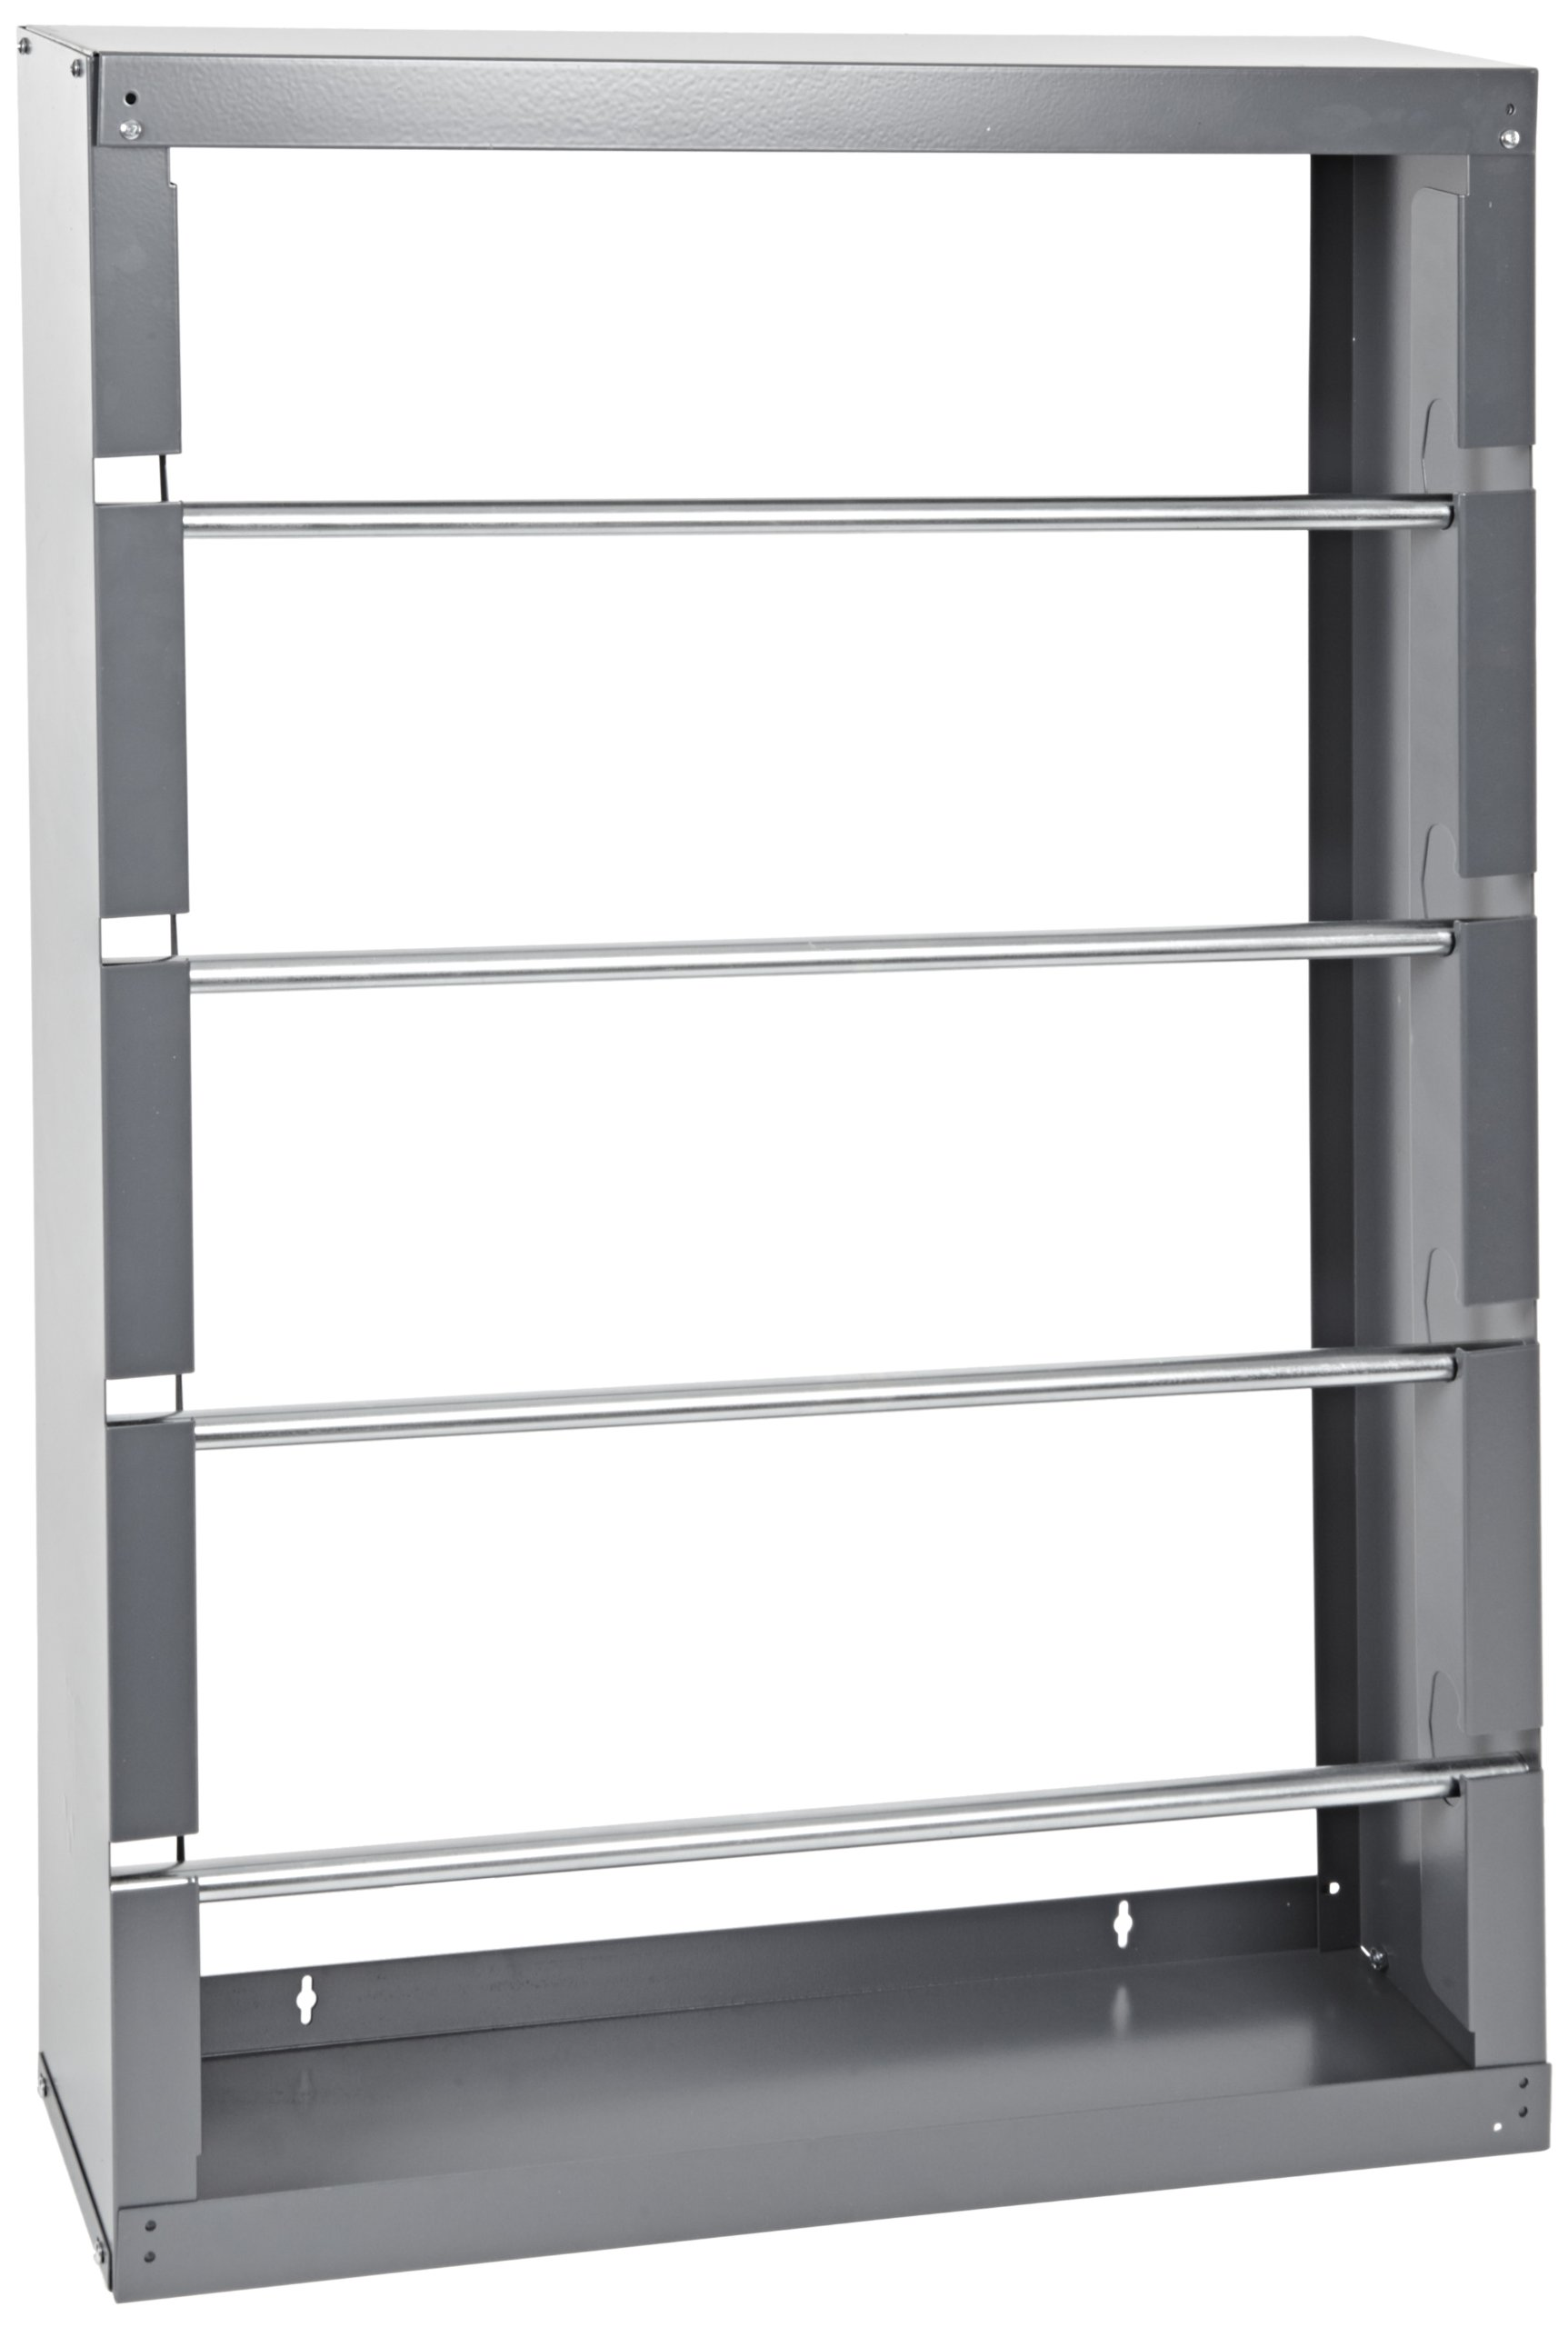 Durham 368-95 Gray Cold-Rolled Steel Wire Spool Rack with 4 Rods, 26-1/8'' Width x 37-1/8'' Height x 6'' Depth